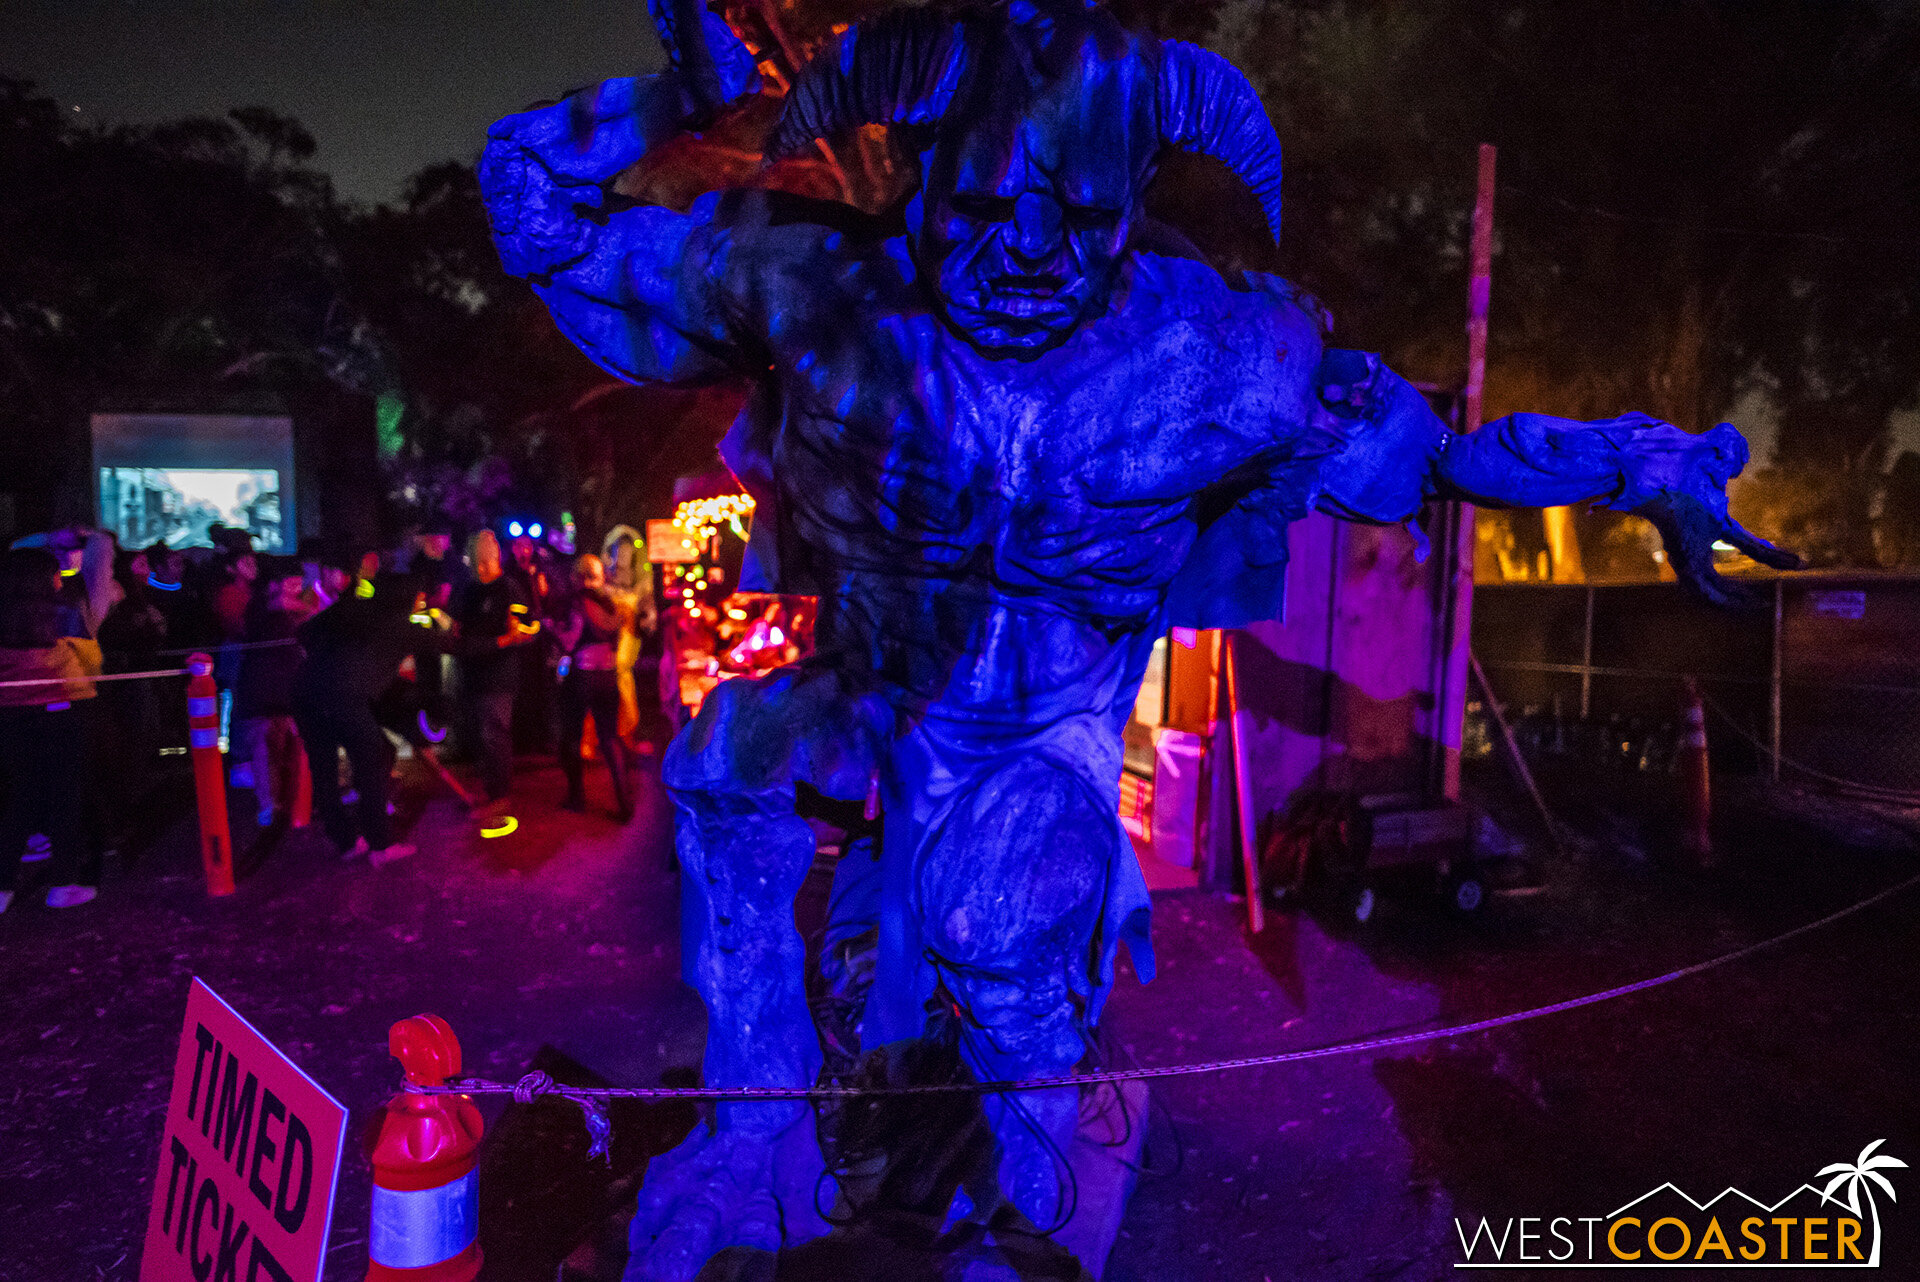 A demon to pose with in the extended queue area inside.